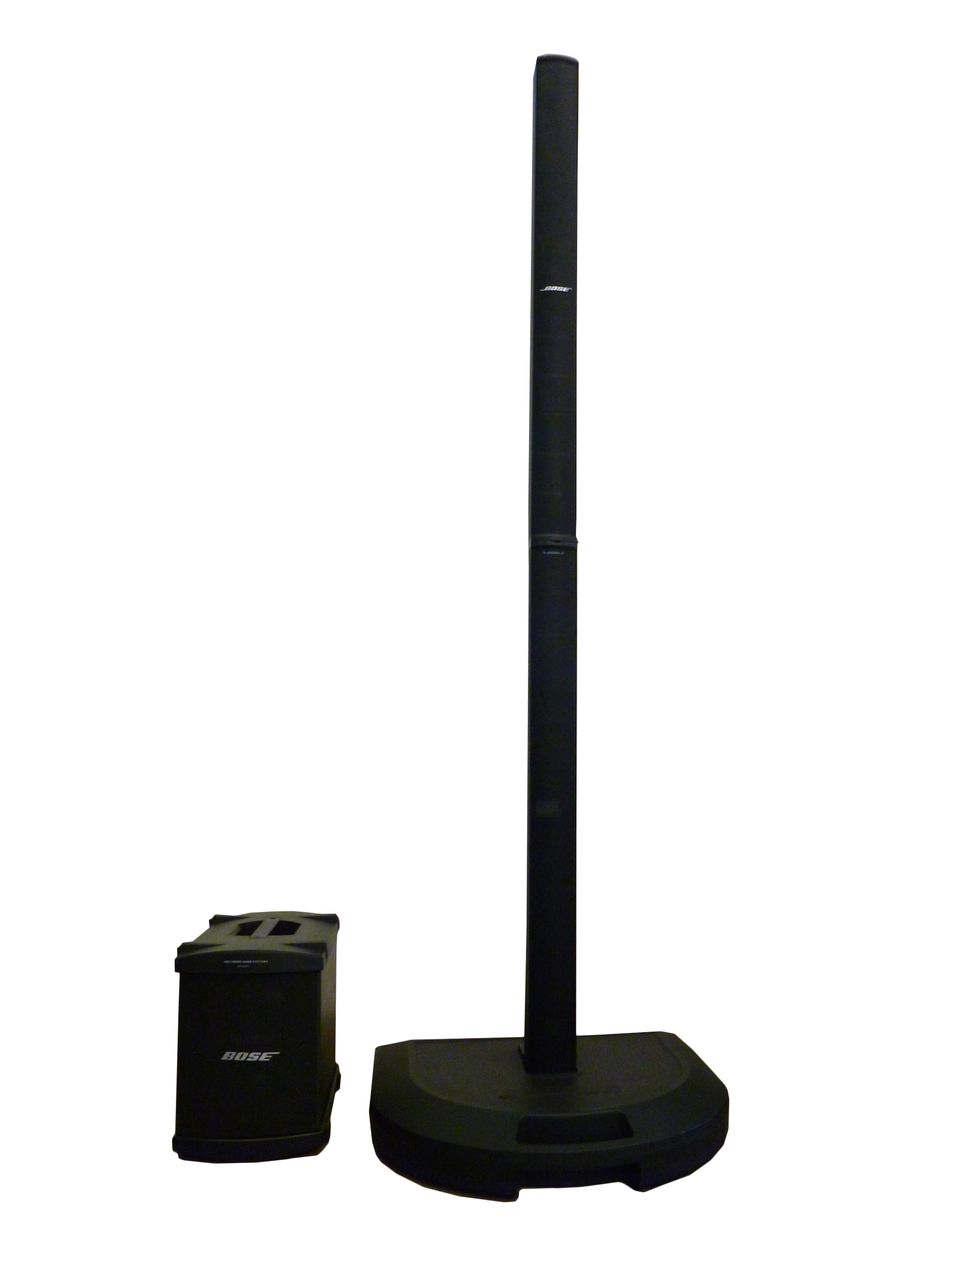 The Bose L1 Model 1 Single Bass PA System is available at Hollywood Sound Systems.